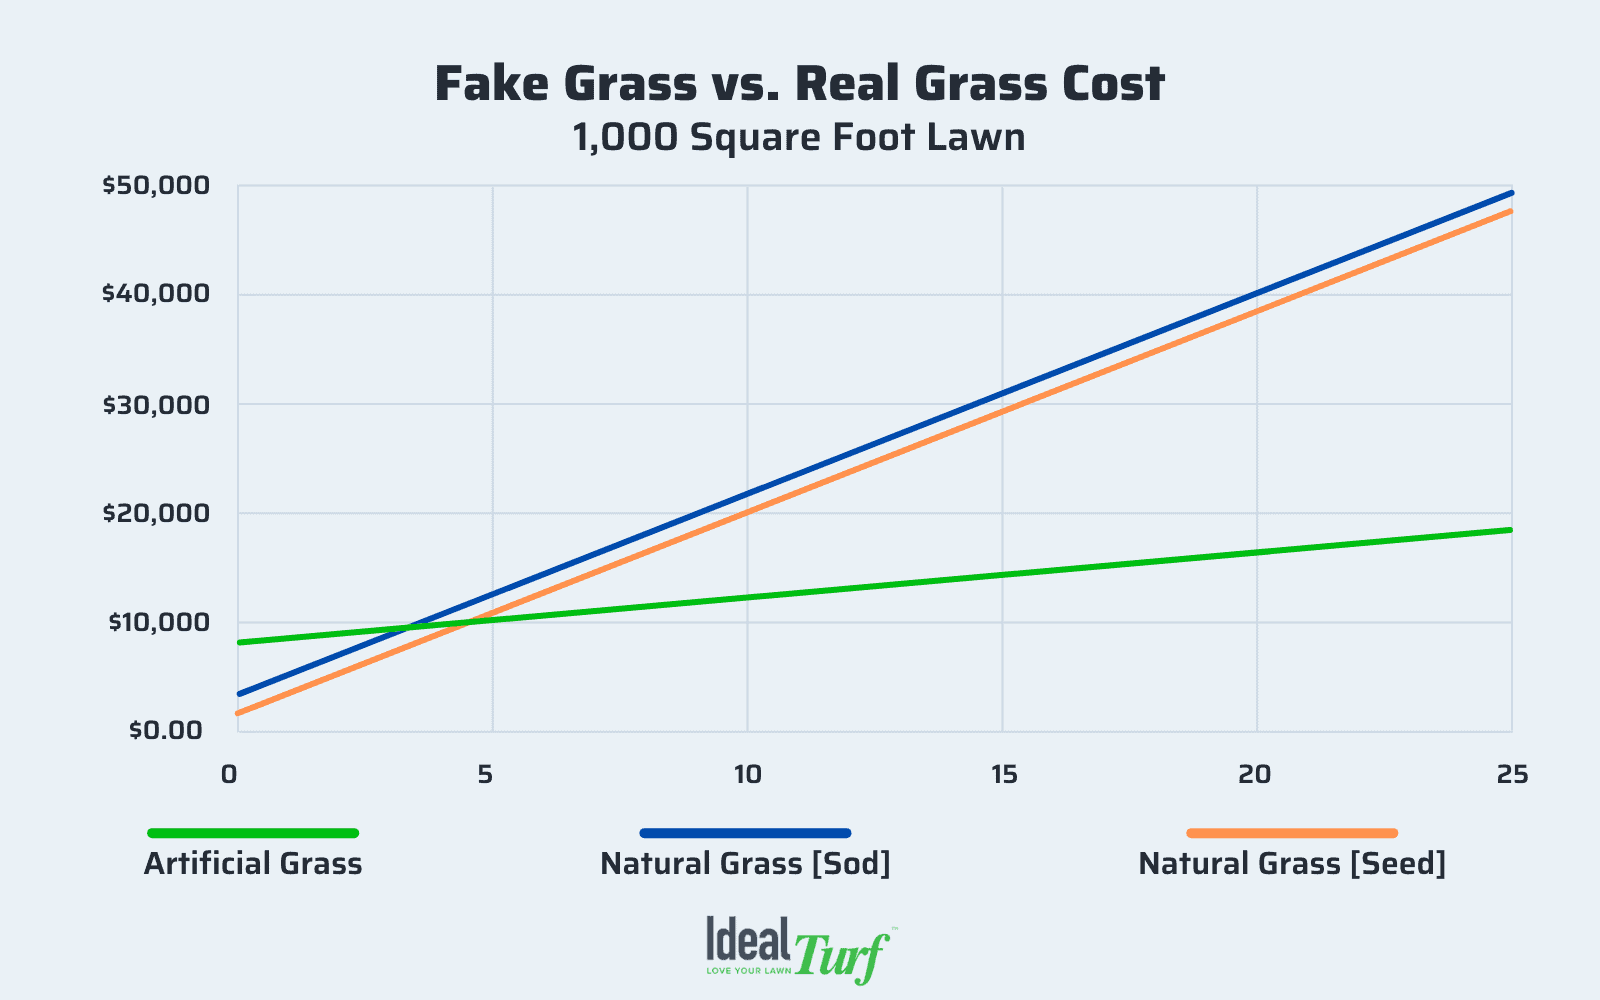 Fake Grass vs. Real Grass - 25 Year Cost Graph